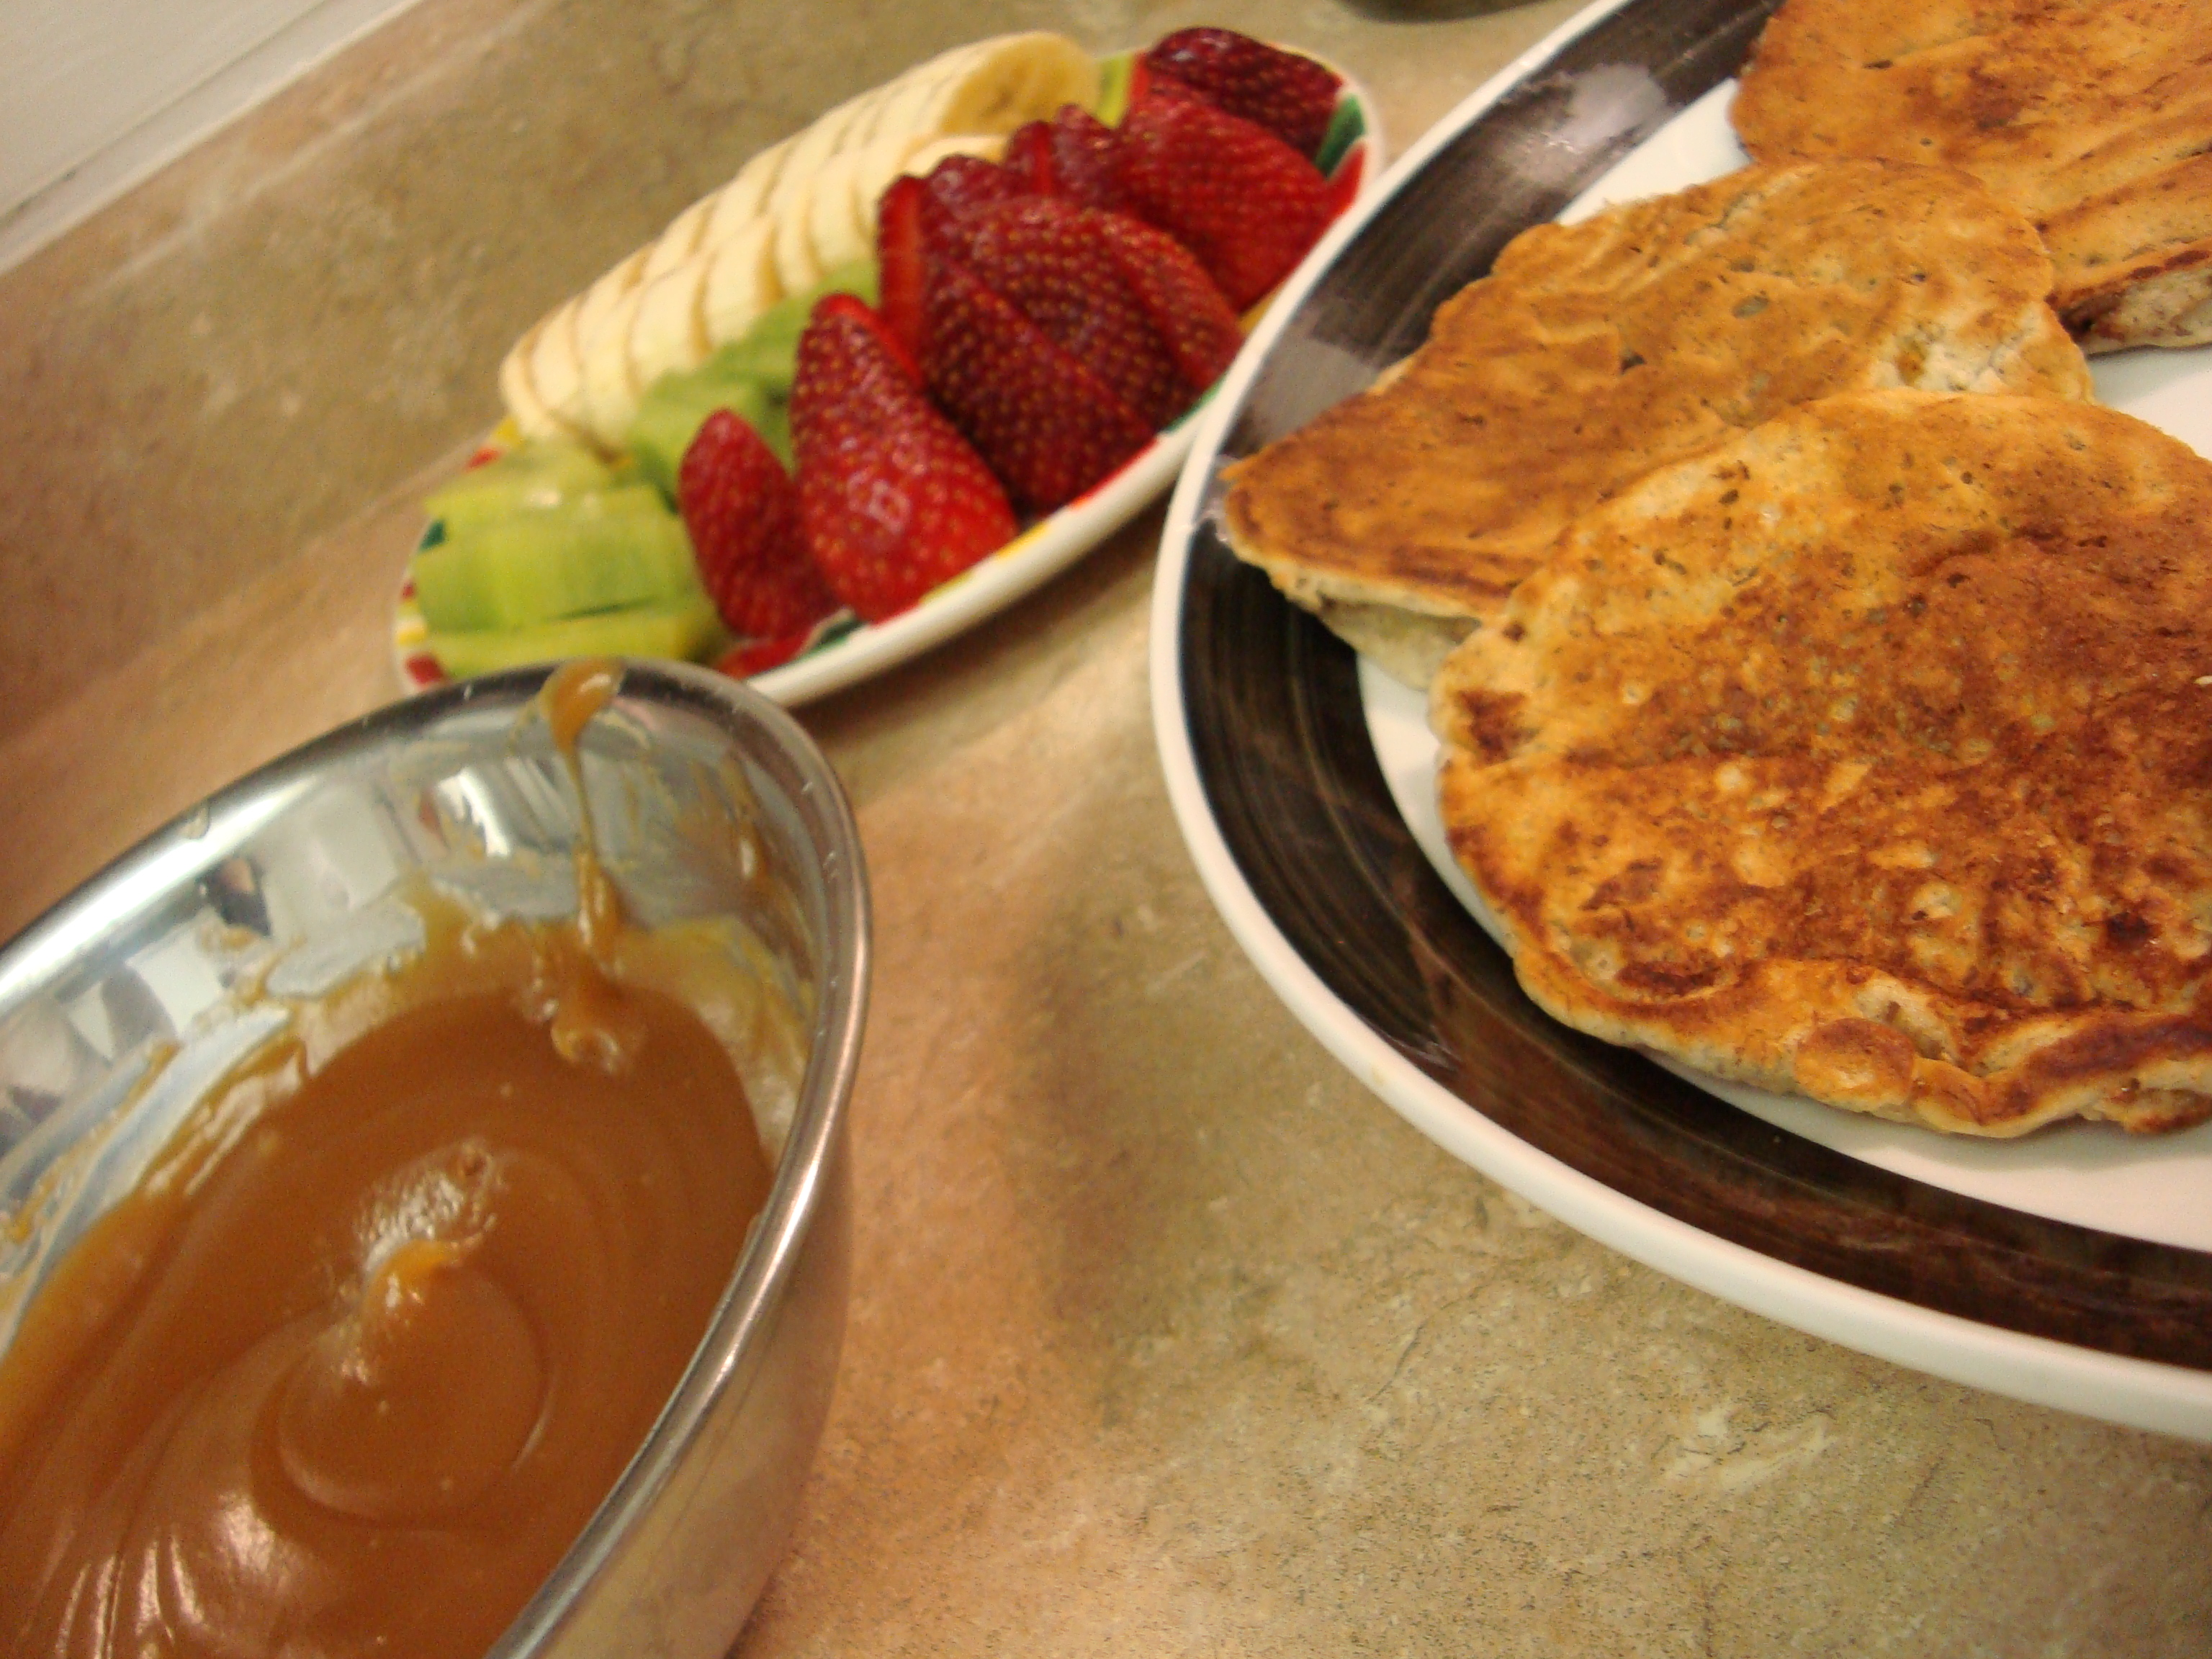 Healthy Homemade Banana Pancakes with fresh fruit and peanut butter ...